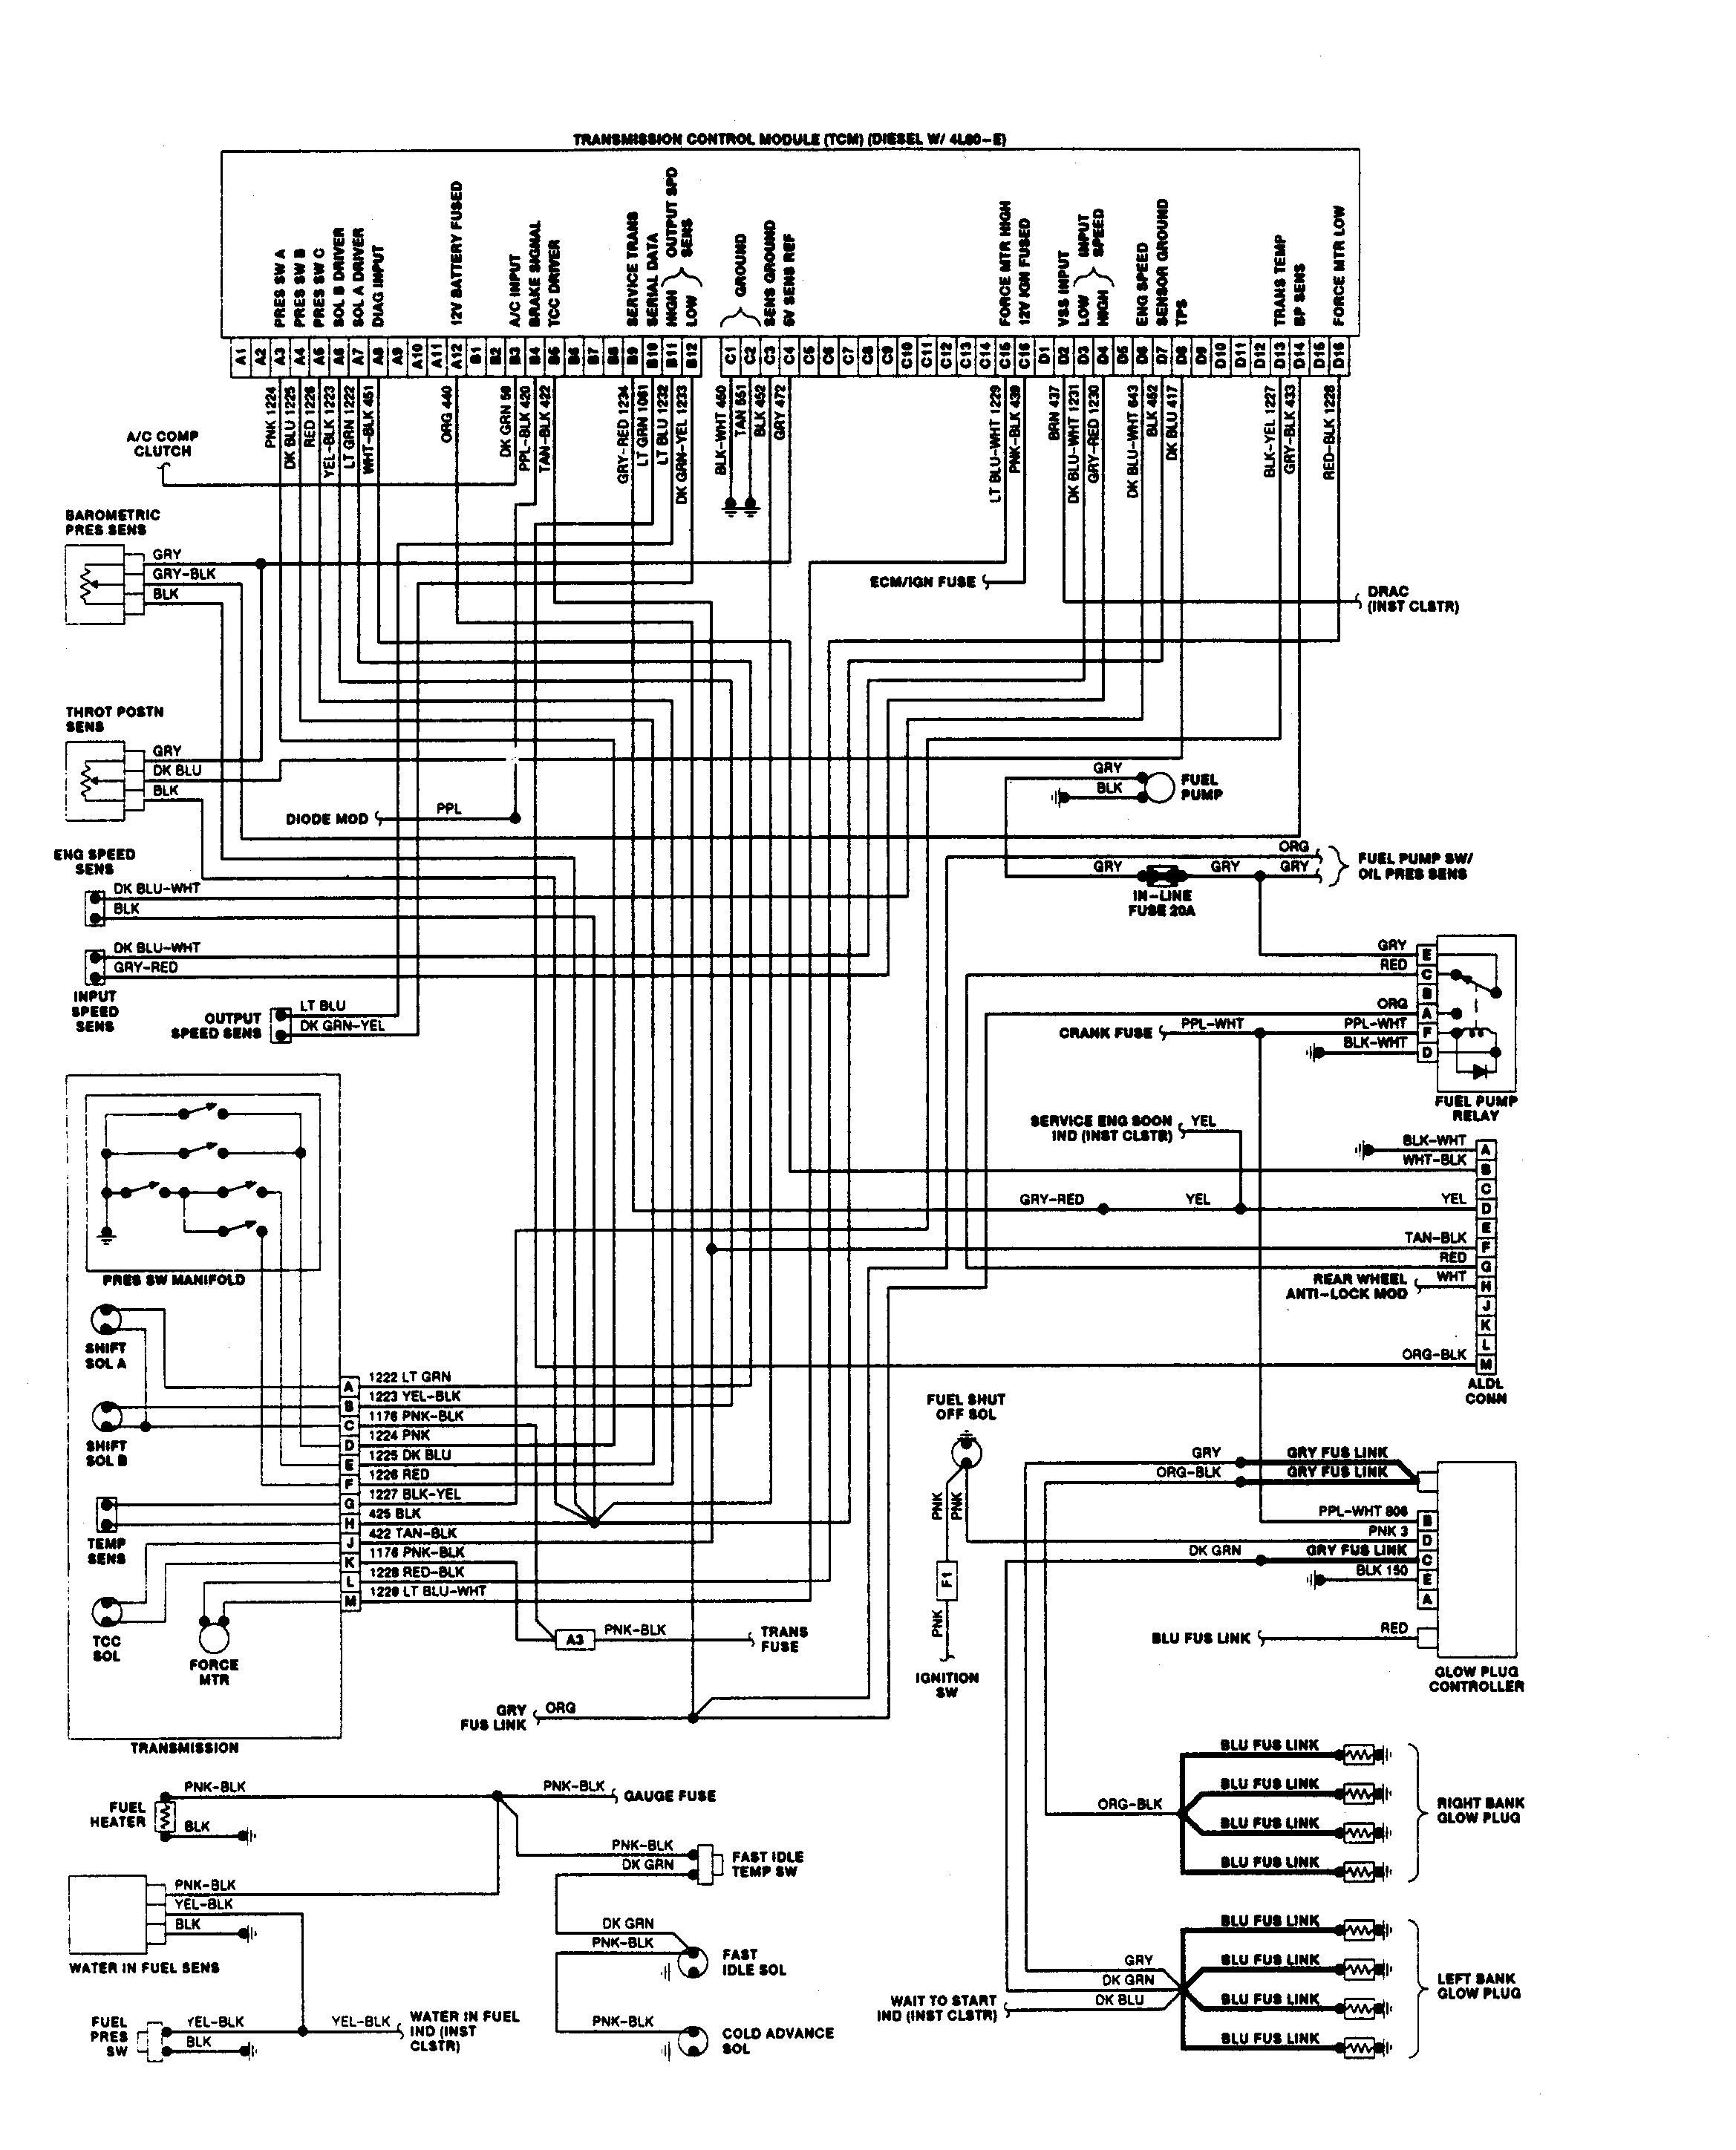 1991 Chevy P30 Wiring Diagrams Diagram Chevy Chevrolet